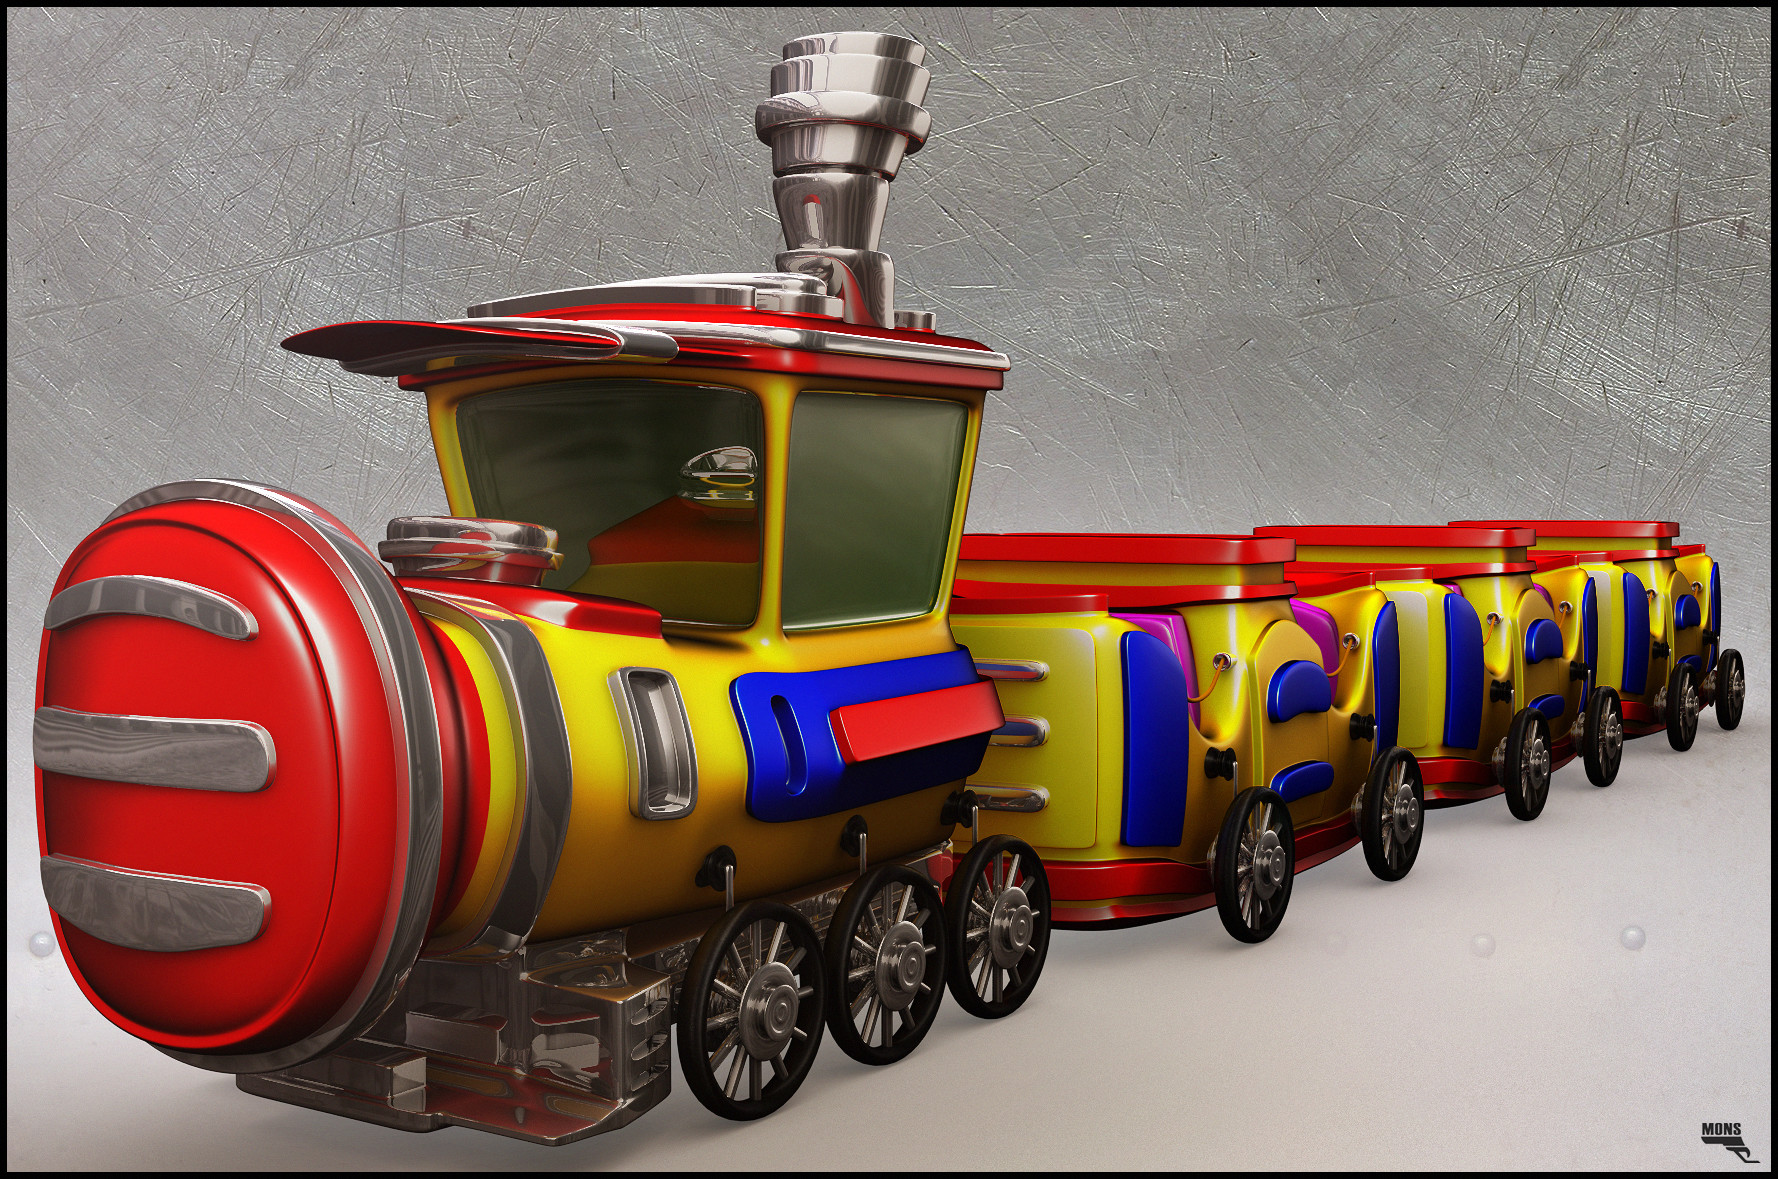 Marc mons cartoon train